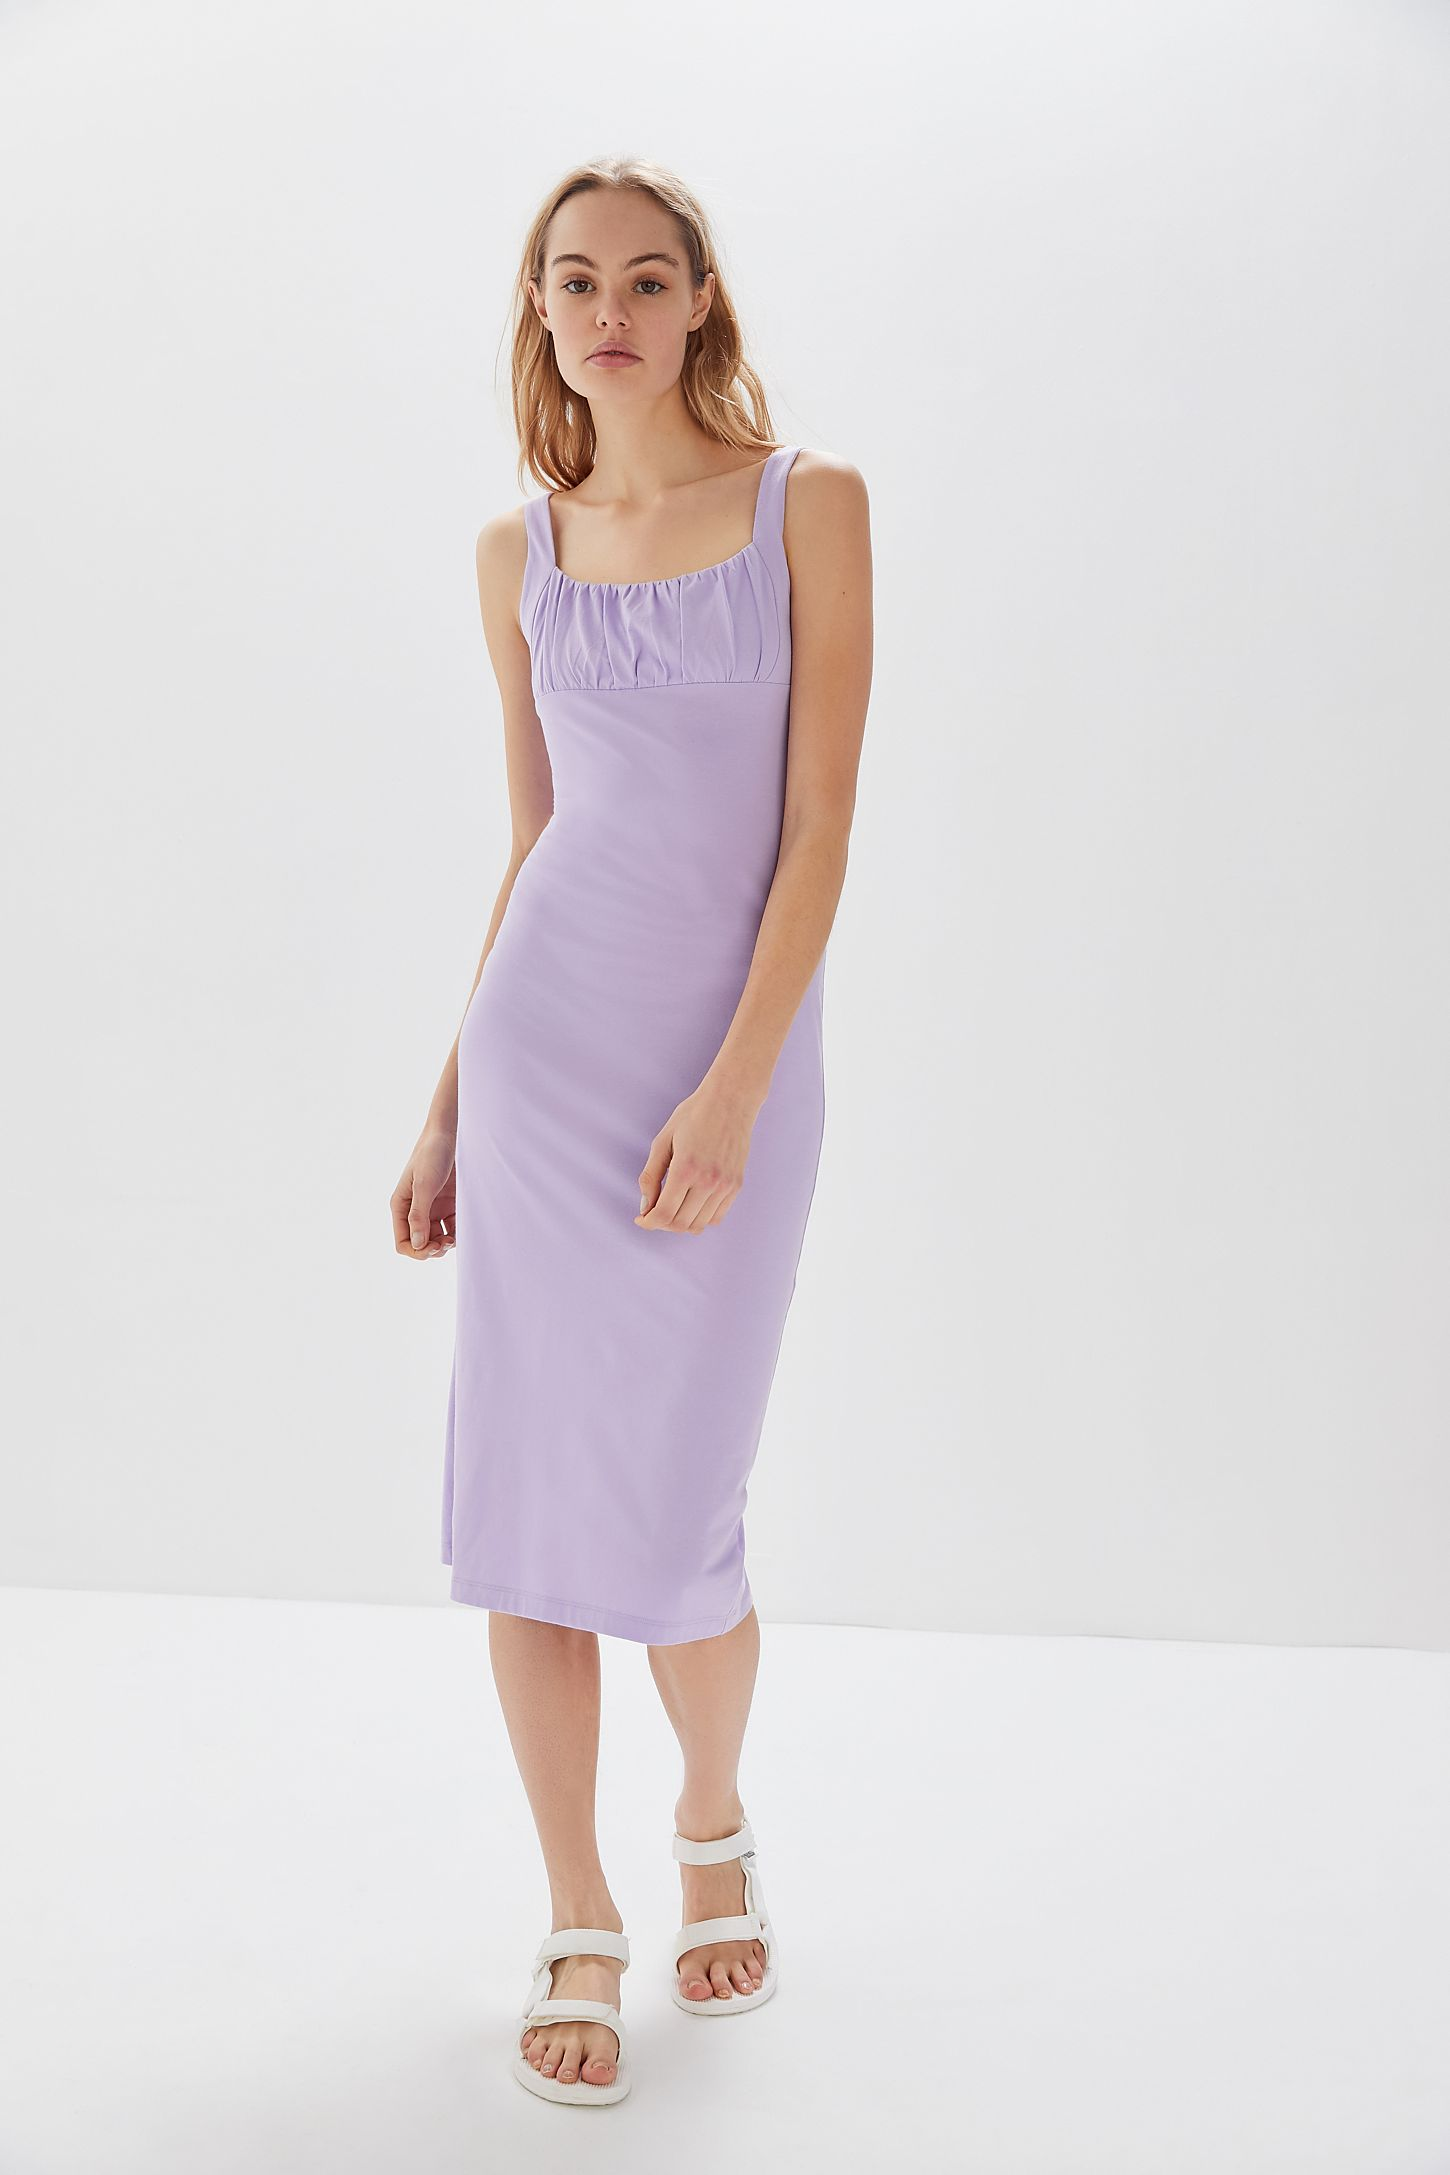 fdd7c6a847d3 UO Geneva Ruched Empire Waist Midi Dress | Urban Outfitters